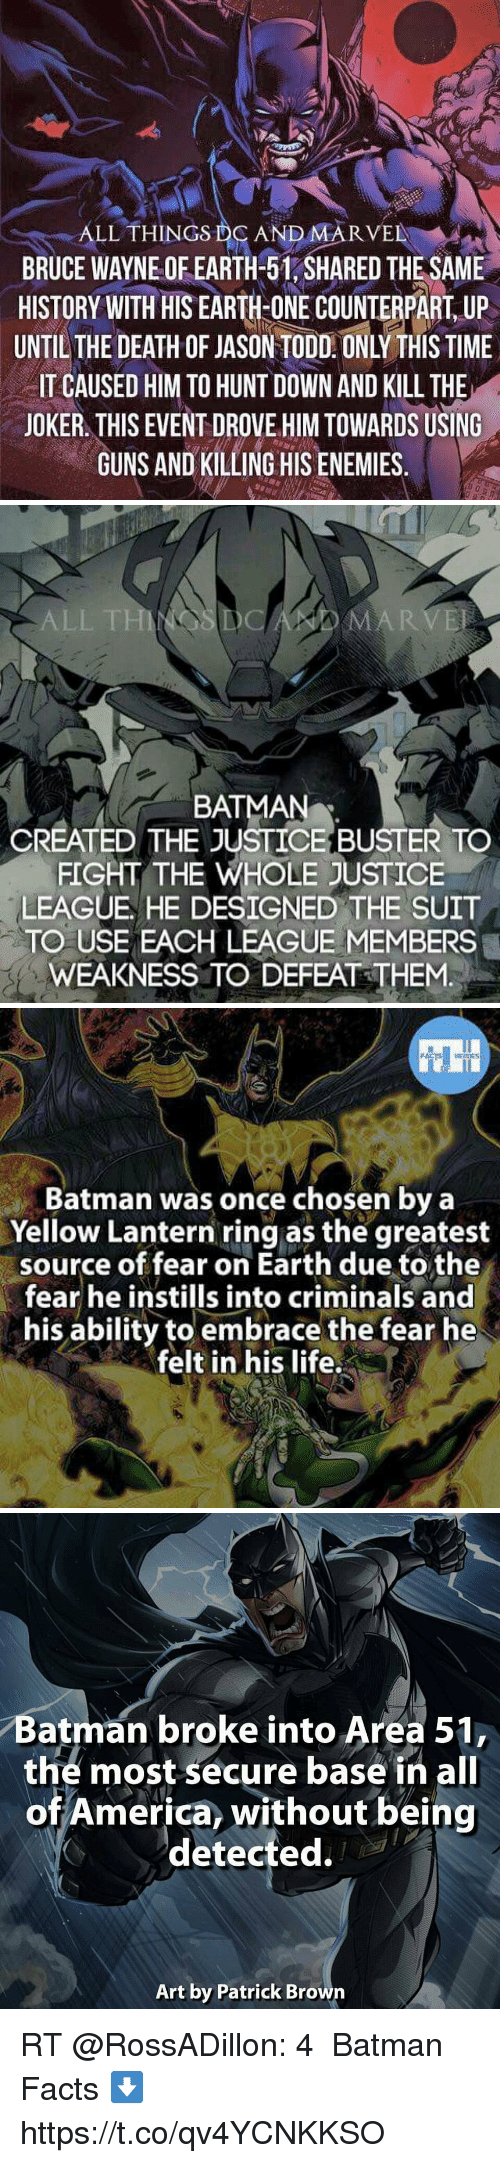 America, Batman, and Facts: ALL THINGS DCNDMARVE  BRUCE WAYNE OF EARTH-51, SHARED THESAME  HISTORY WITH HIS EARHONECONTERPART UP  UNTIL THE DEATH OF JASON TODD. ONLY THIS TIME  IT CAUSED HIM TO HUNT DOWN AND KILL THE  JOKER. THIS EVENT DROVE HIM TOWARDS USING  GUNS AND KILLING HIS ENEMIES.   ALL  ARVE  BATMAN  CREATED THE JUSTICE BUSTER TO  FIGHT THE WHOLE JUSTICE  LEAGUE HE DESIGNED THE SUIT  TO USE EACH LEAGUE MEMBERS  WEAKNESS TO DEFEAT THEM.   Batman was once chosen by a  Yellow Lantern ring as the greatest  source of fear on Earth due to the  fear he instills into criminals and  his ability to embrace the fear he  felt in his life.   Batman broke into Area 51  the most secure base in all  of America, without being  detected  Art by Patrick Browrn RT @RossADillon: 4️⃣ Batman Facts ⬇️ https://t.co/qv4YCNKKSO